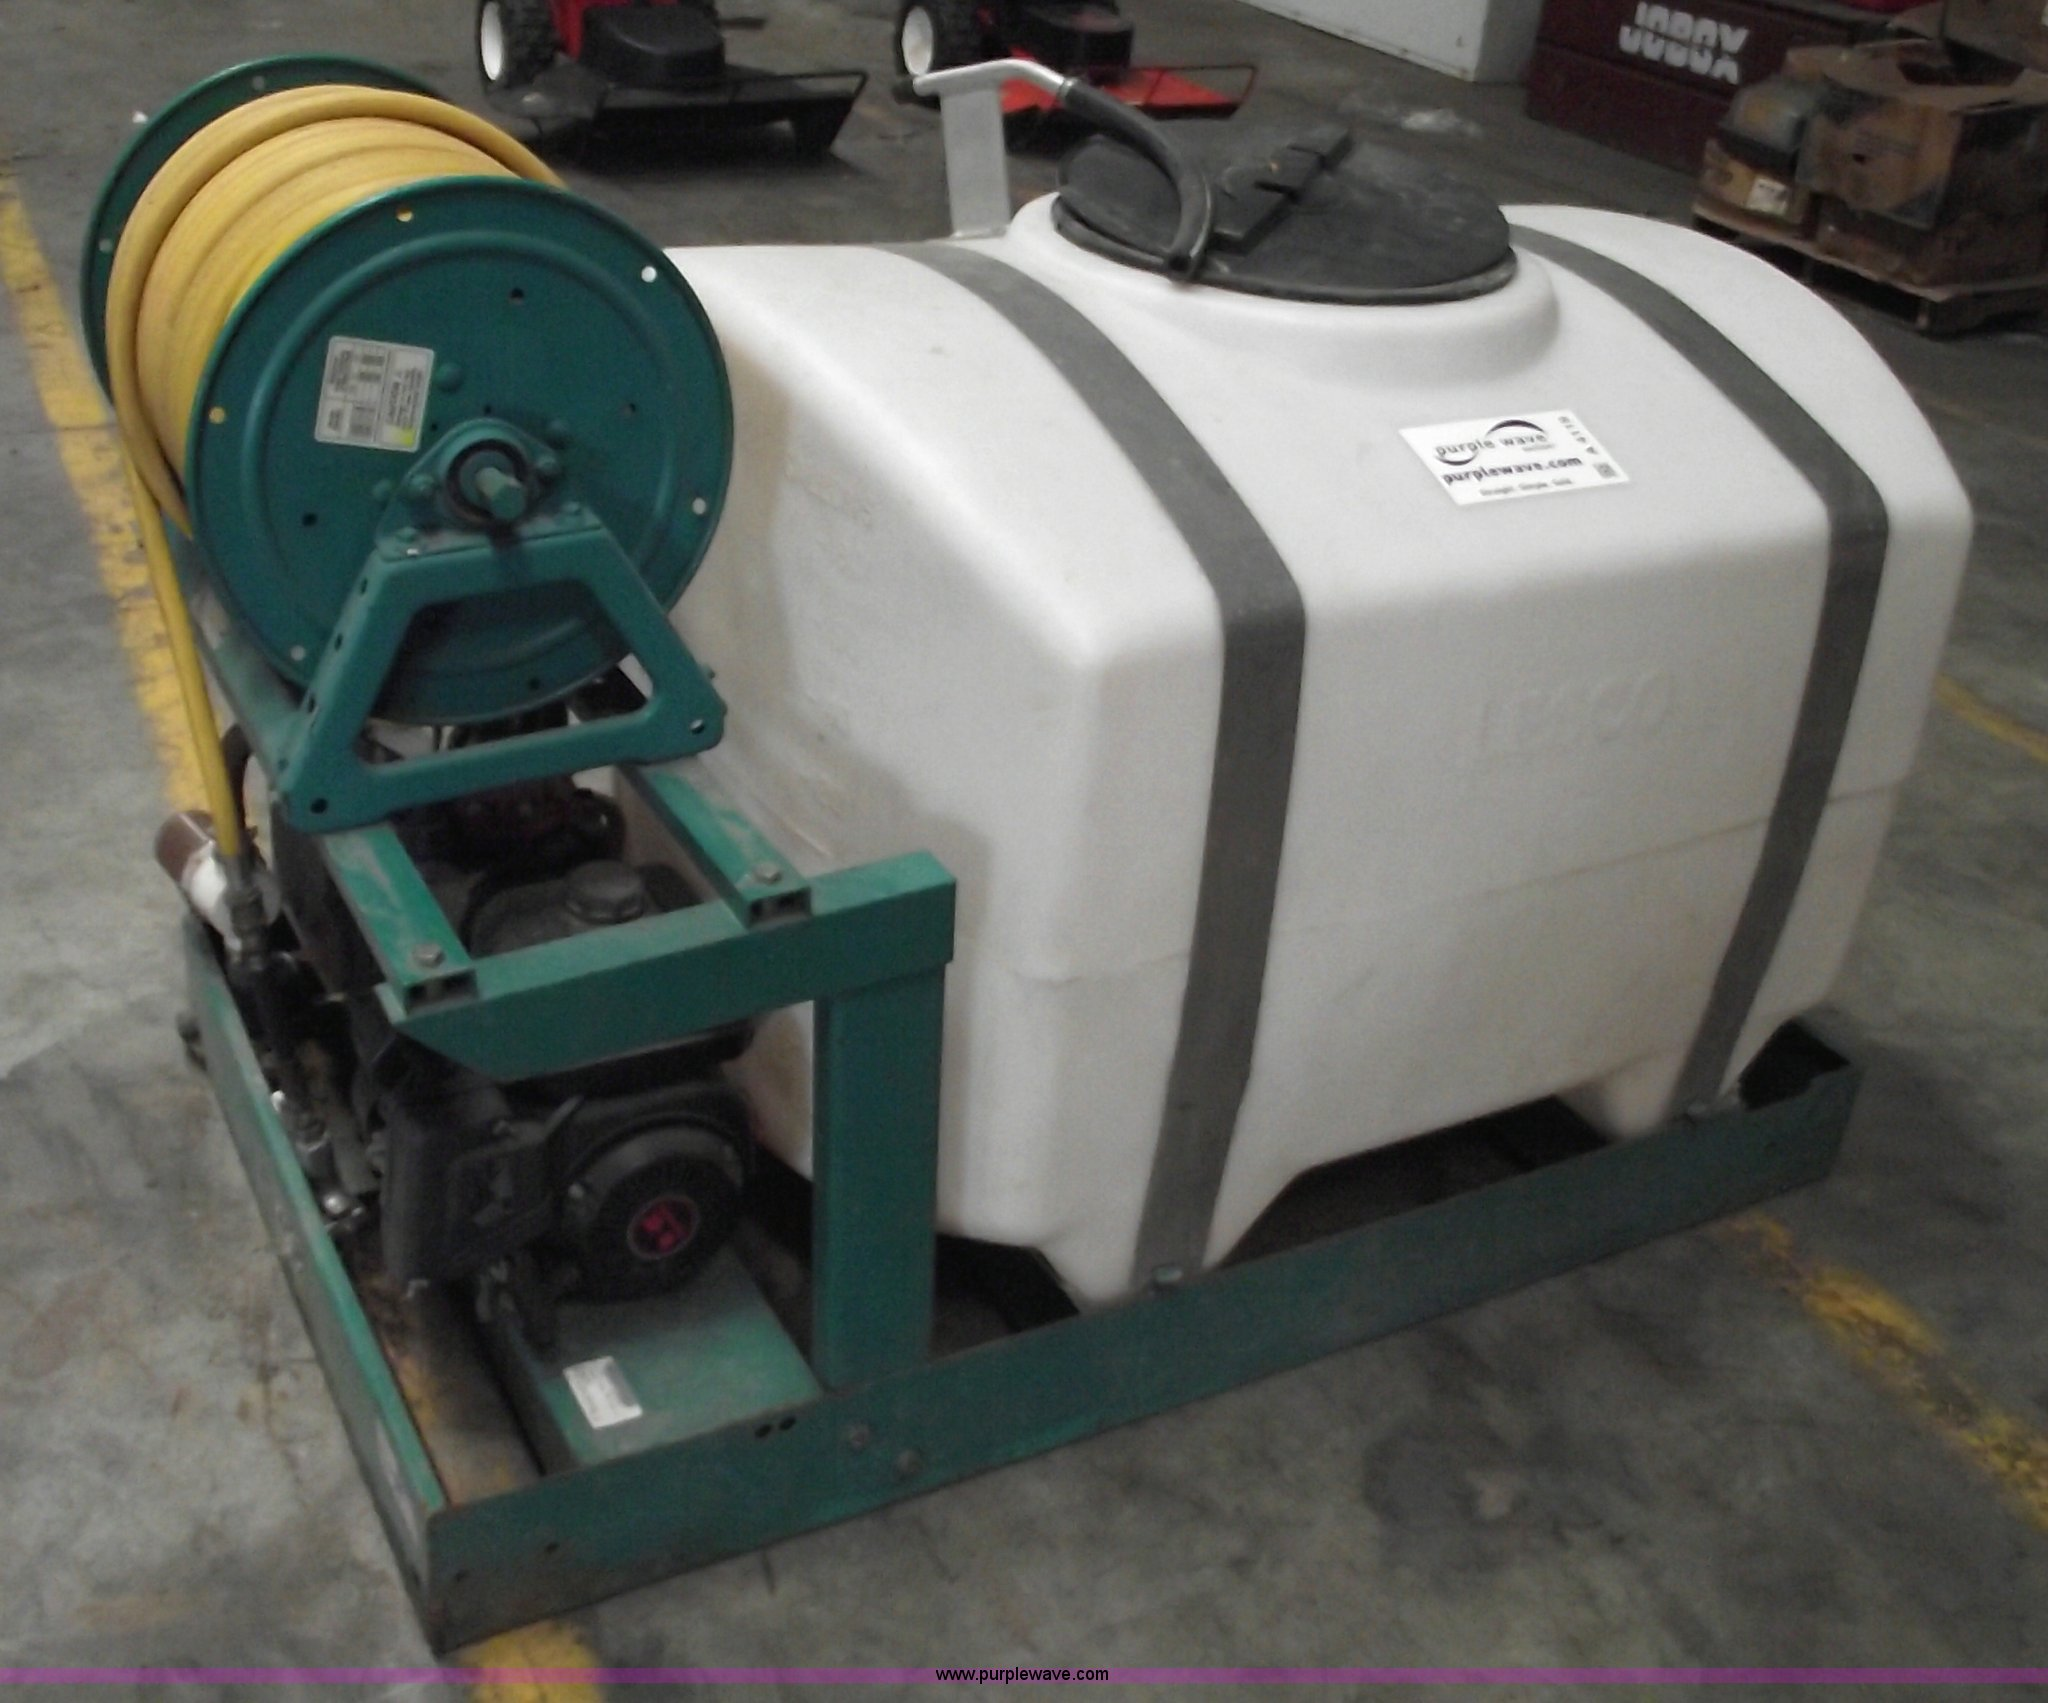 Lesco 200 gallon commercial spray tank | Item A4119 | SOLD!